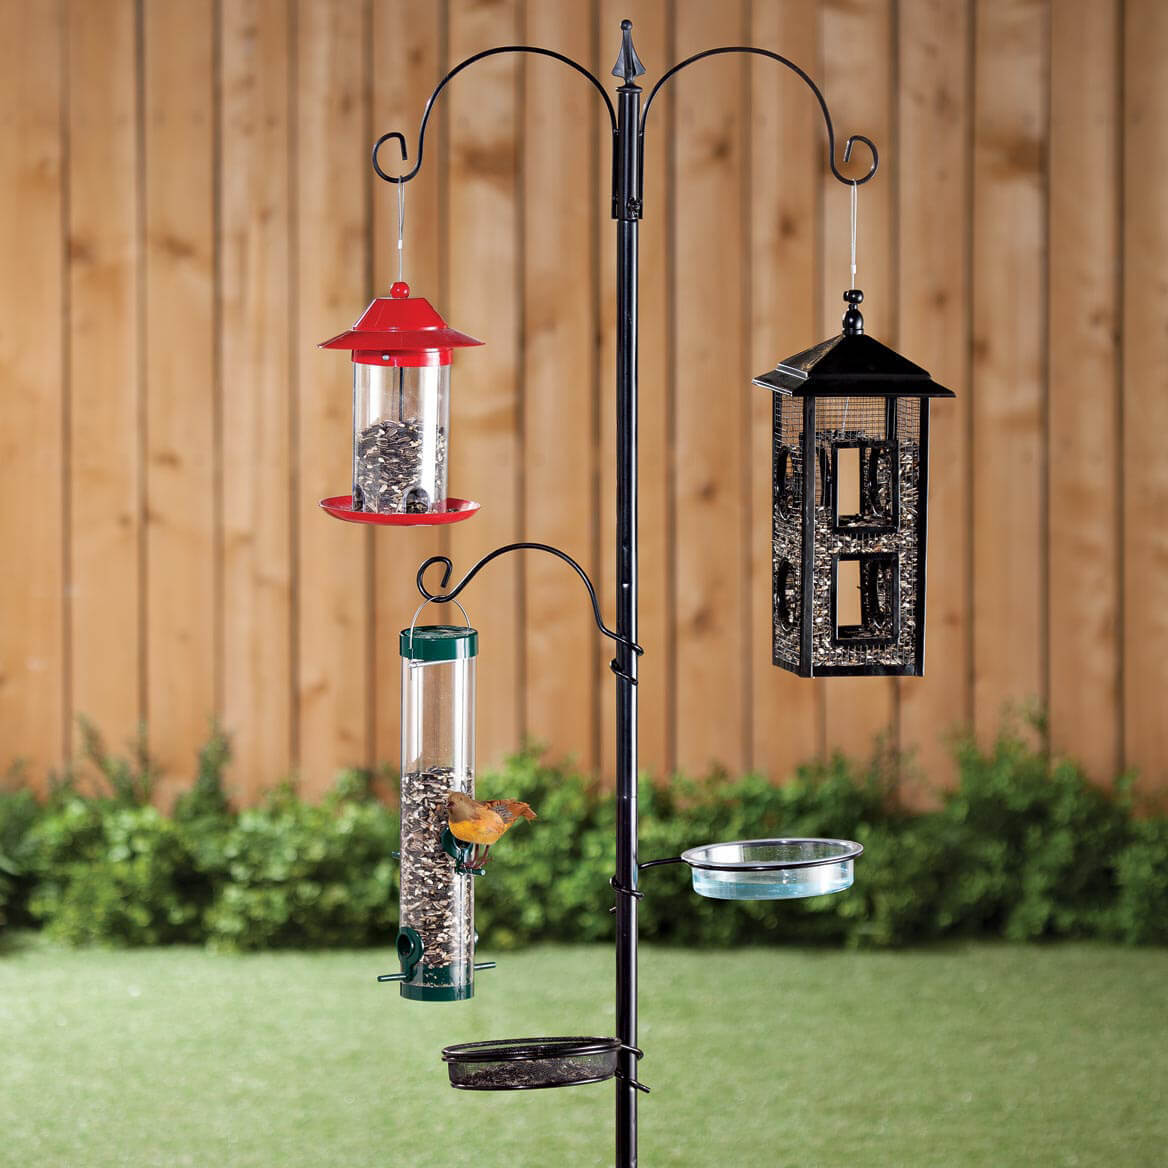 Wild Bird Feeder Stand Outdoor Garden Seed Tray Birds Feeding Station